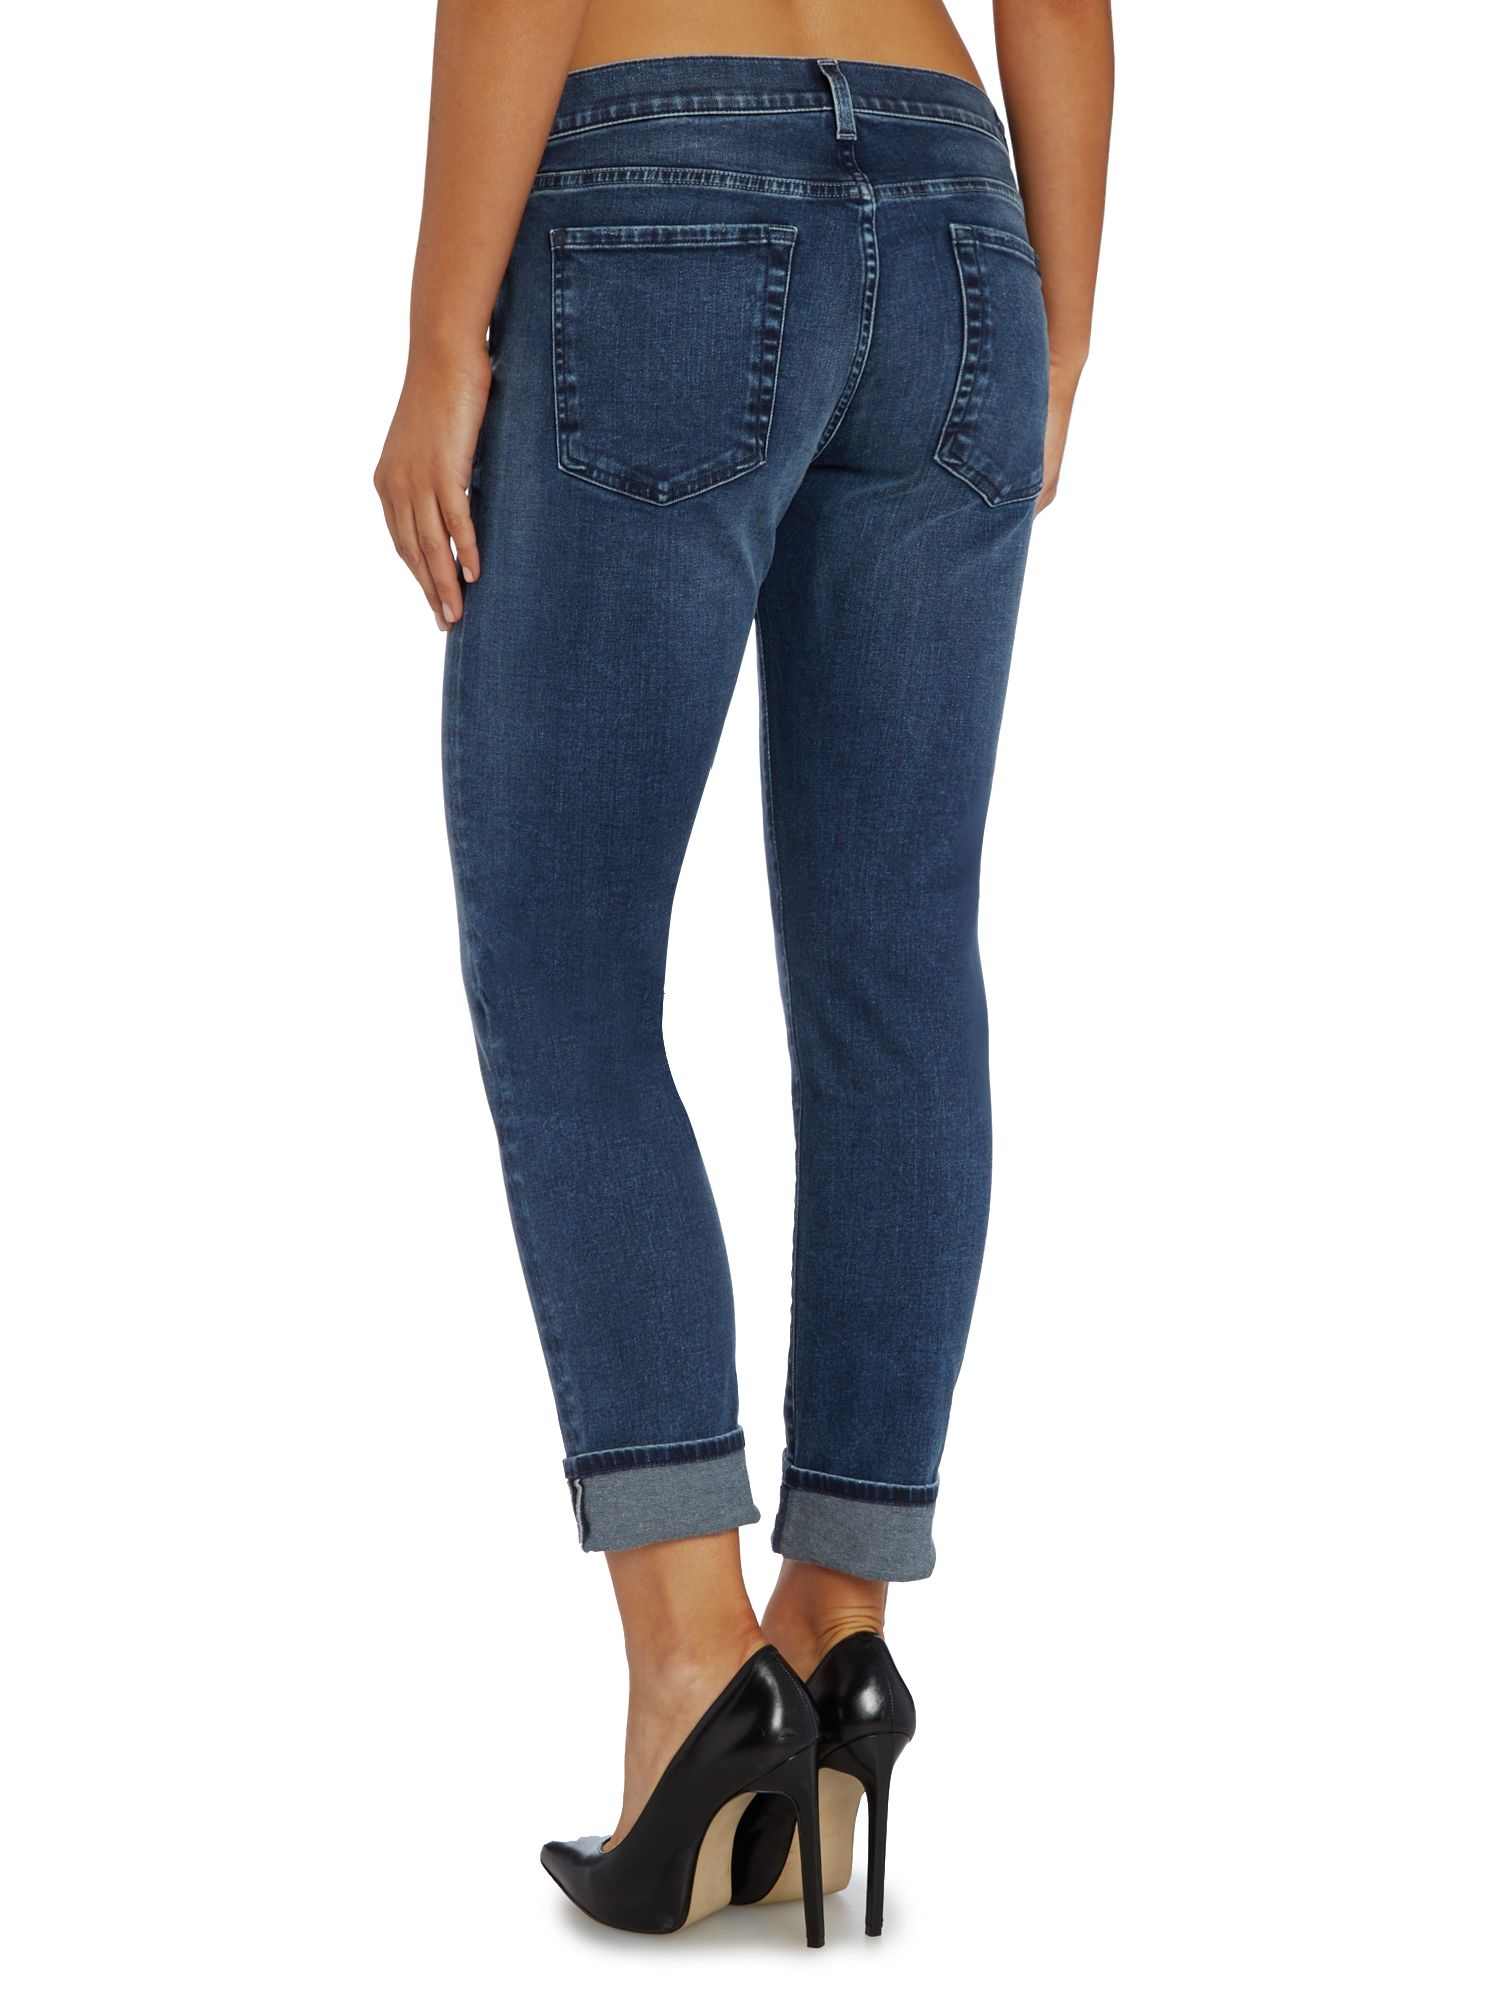 7 for all mankind relaxed skinny aged jean in denim mid blue in blue denim mid wash lyst. Black Bedroom Furniture Sets. Home Design Ideas